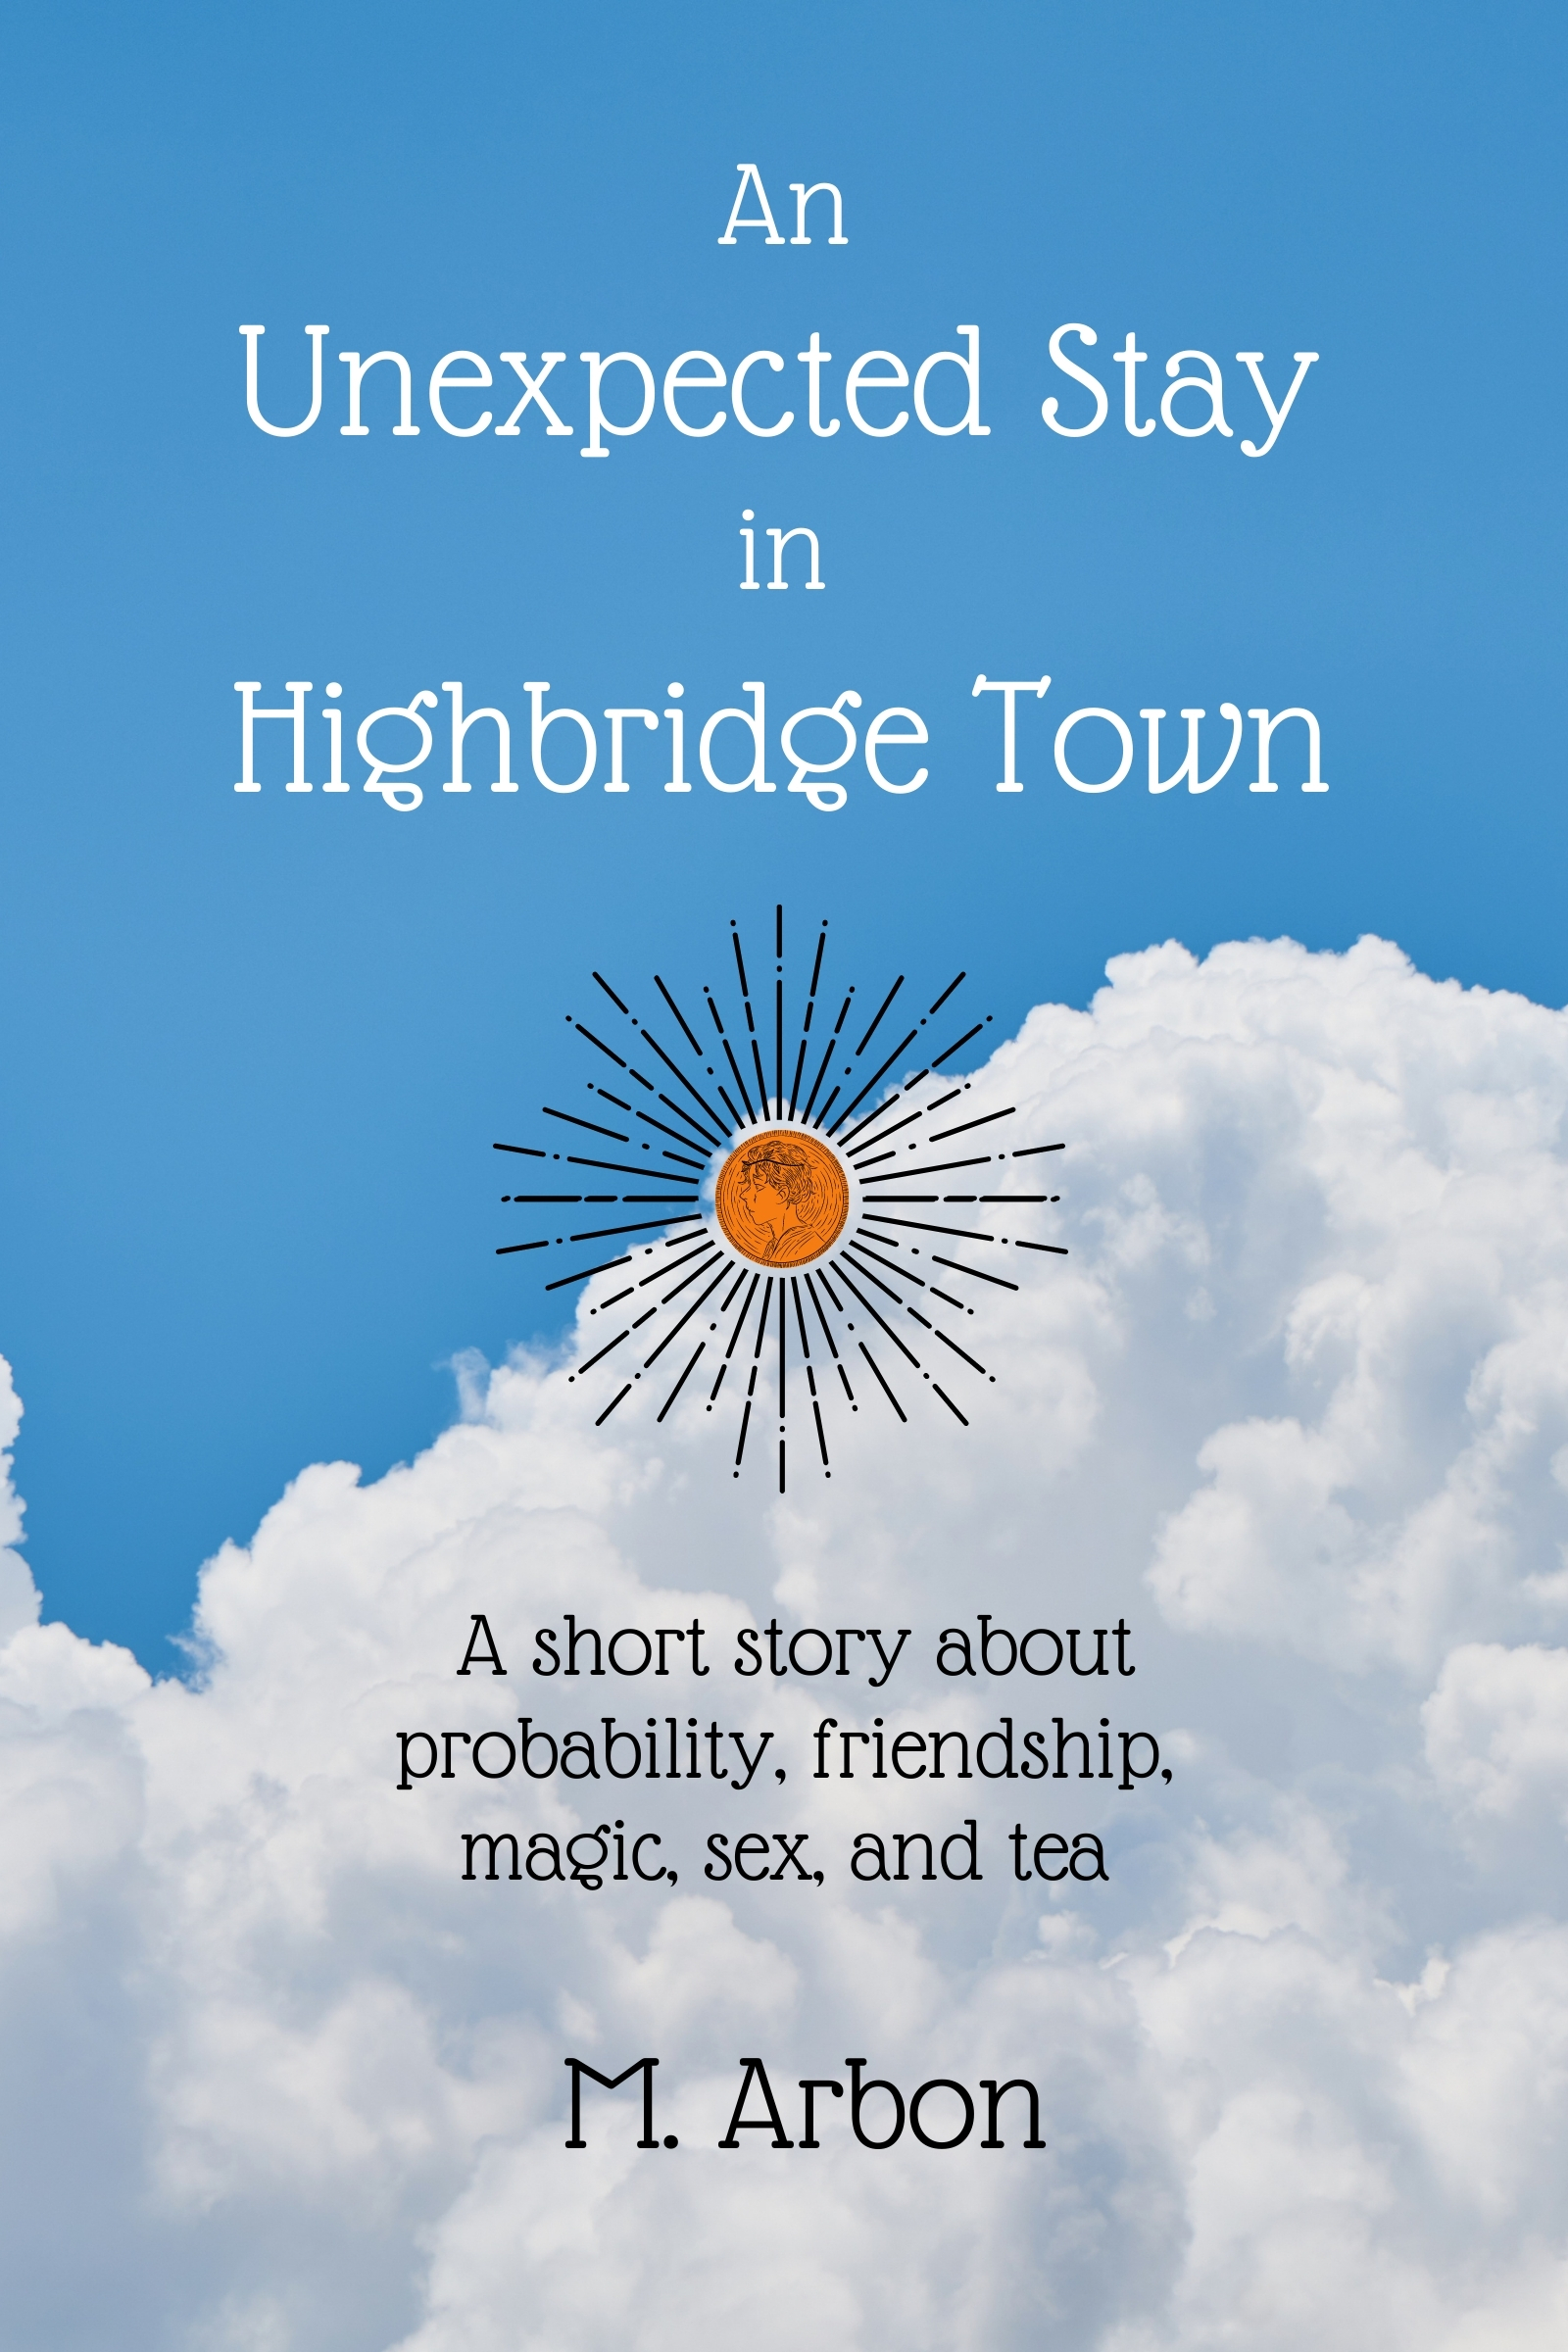 Cover of An Unexpected stay in Highbridge Town showing a coin against blue sky and clouds